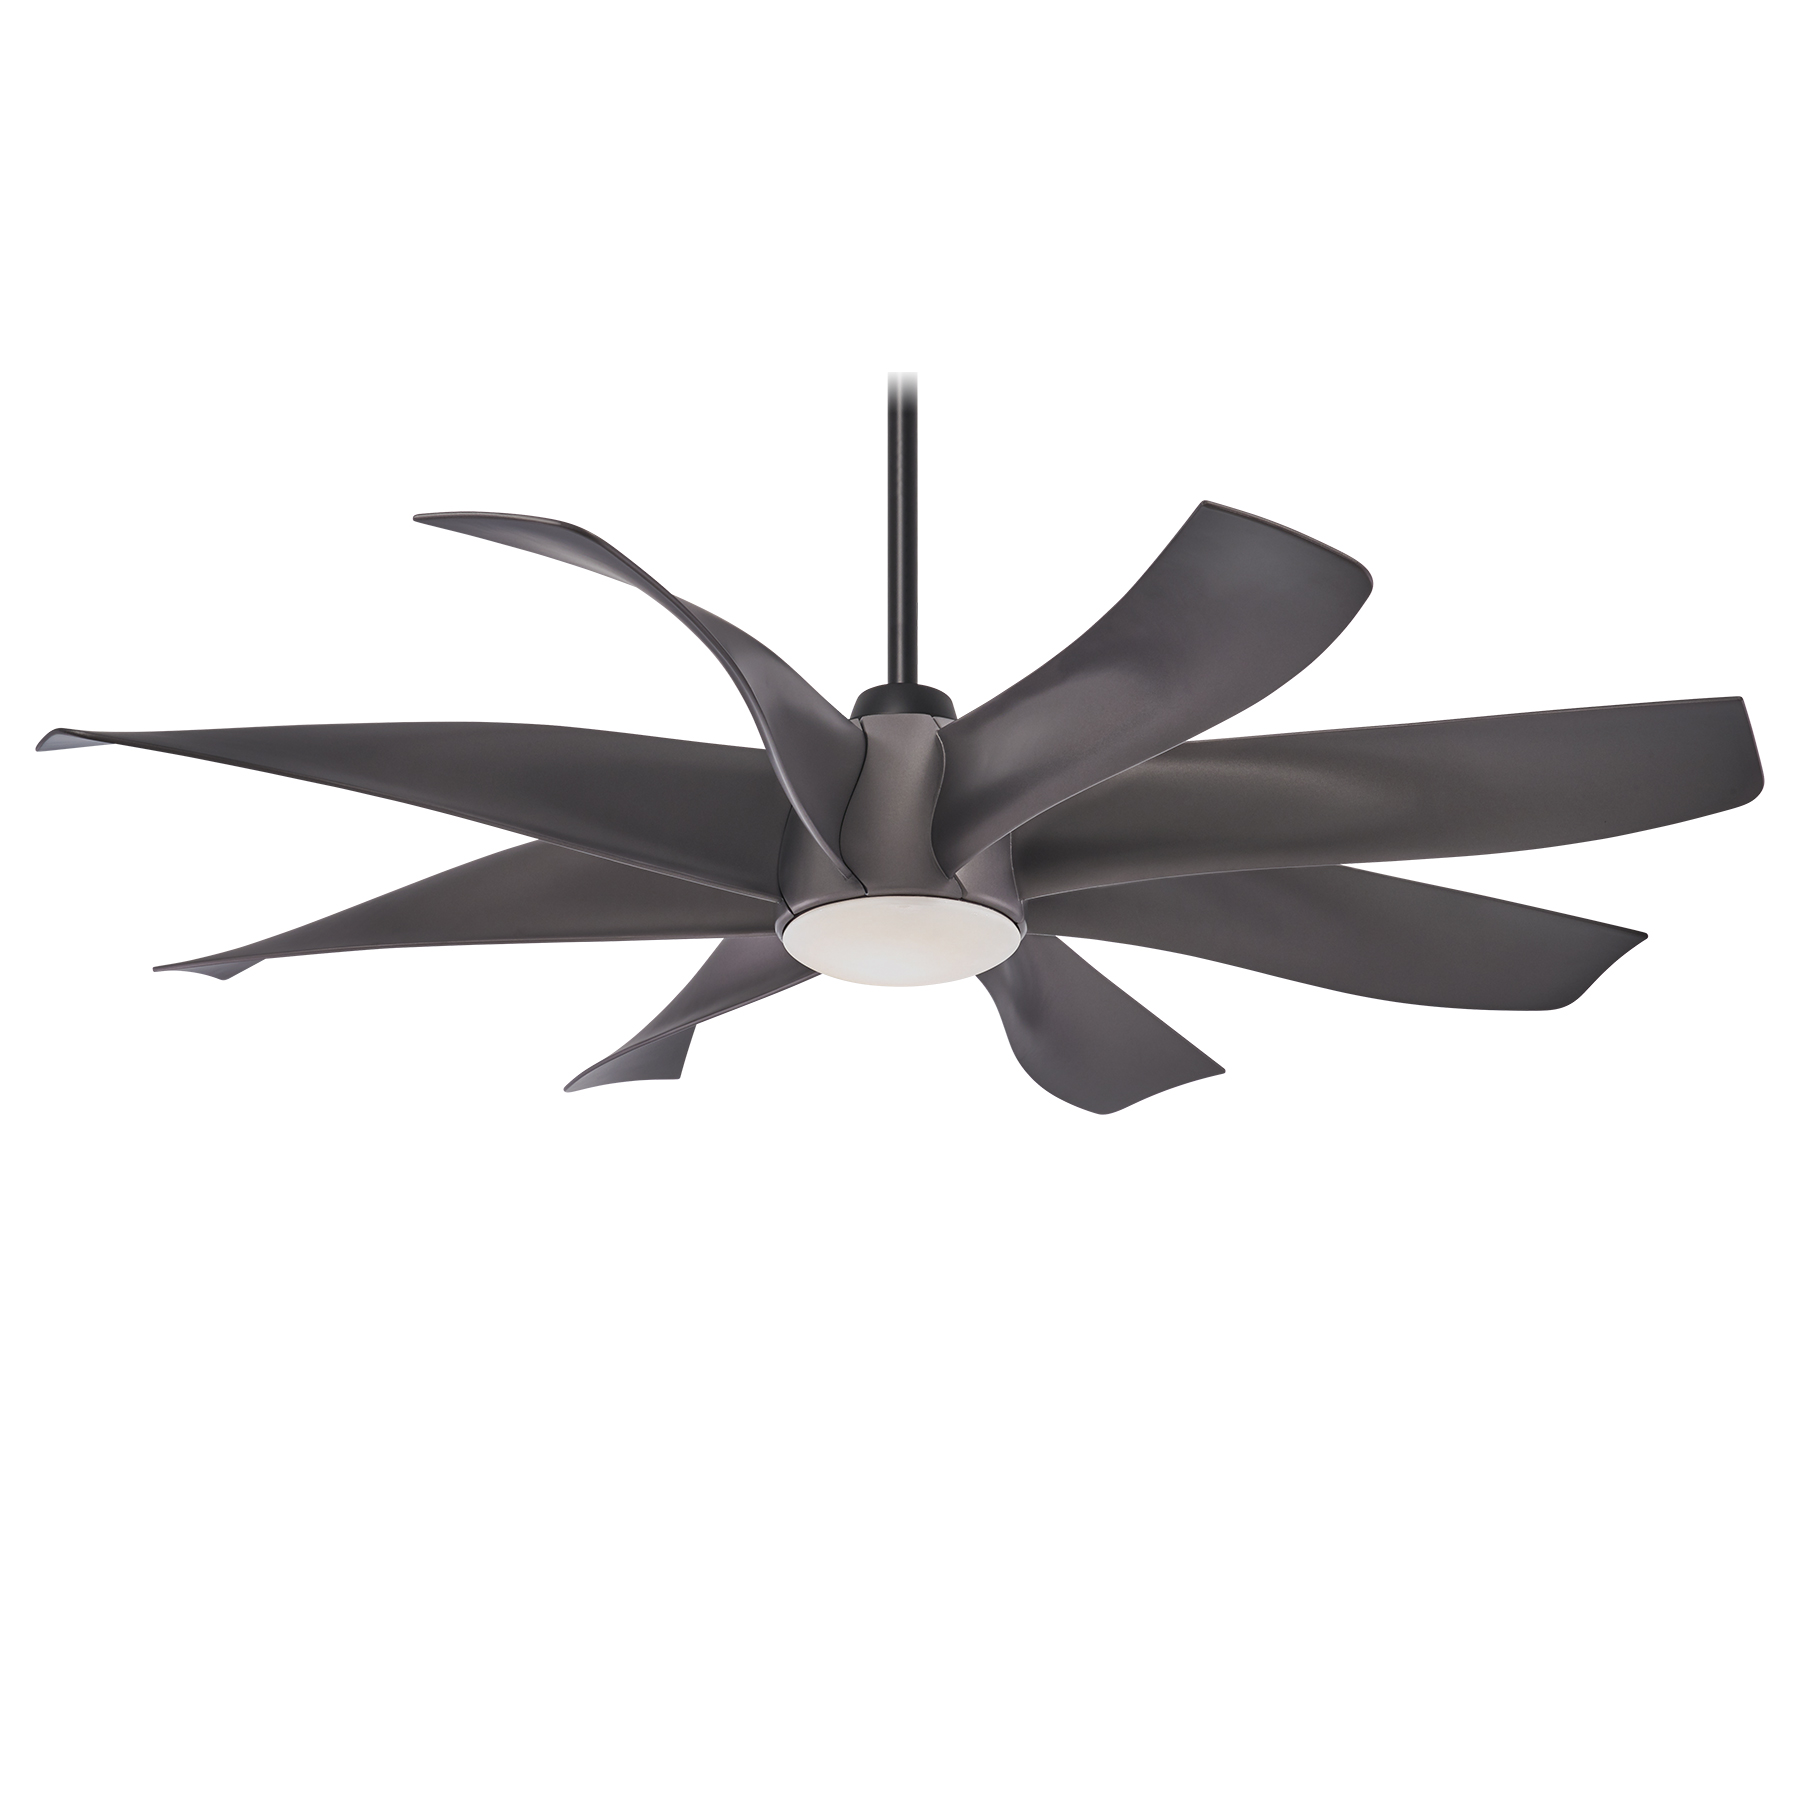 Dream star ceiling fan with light by minka aire f788l gs dream star ceiling fan with light by minka aire aloadofball Images